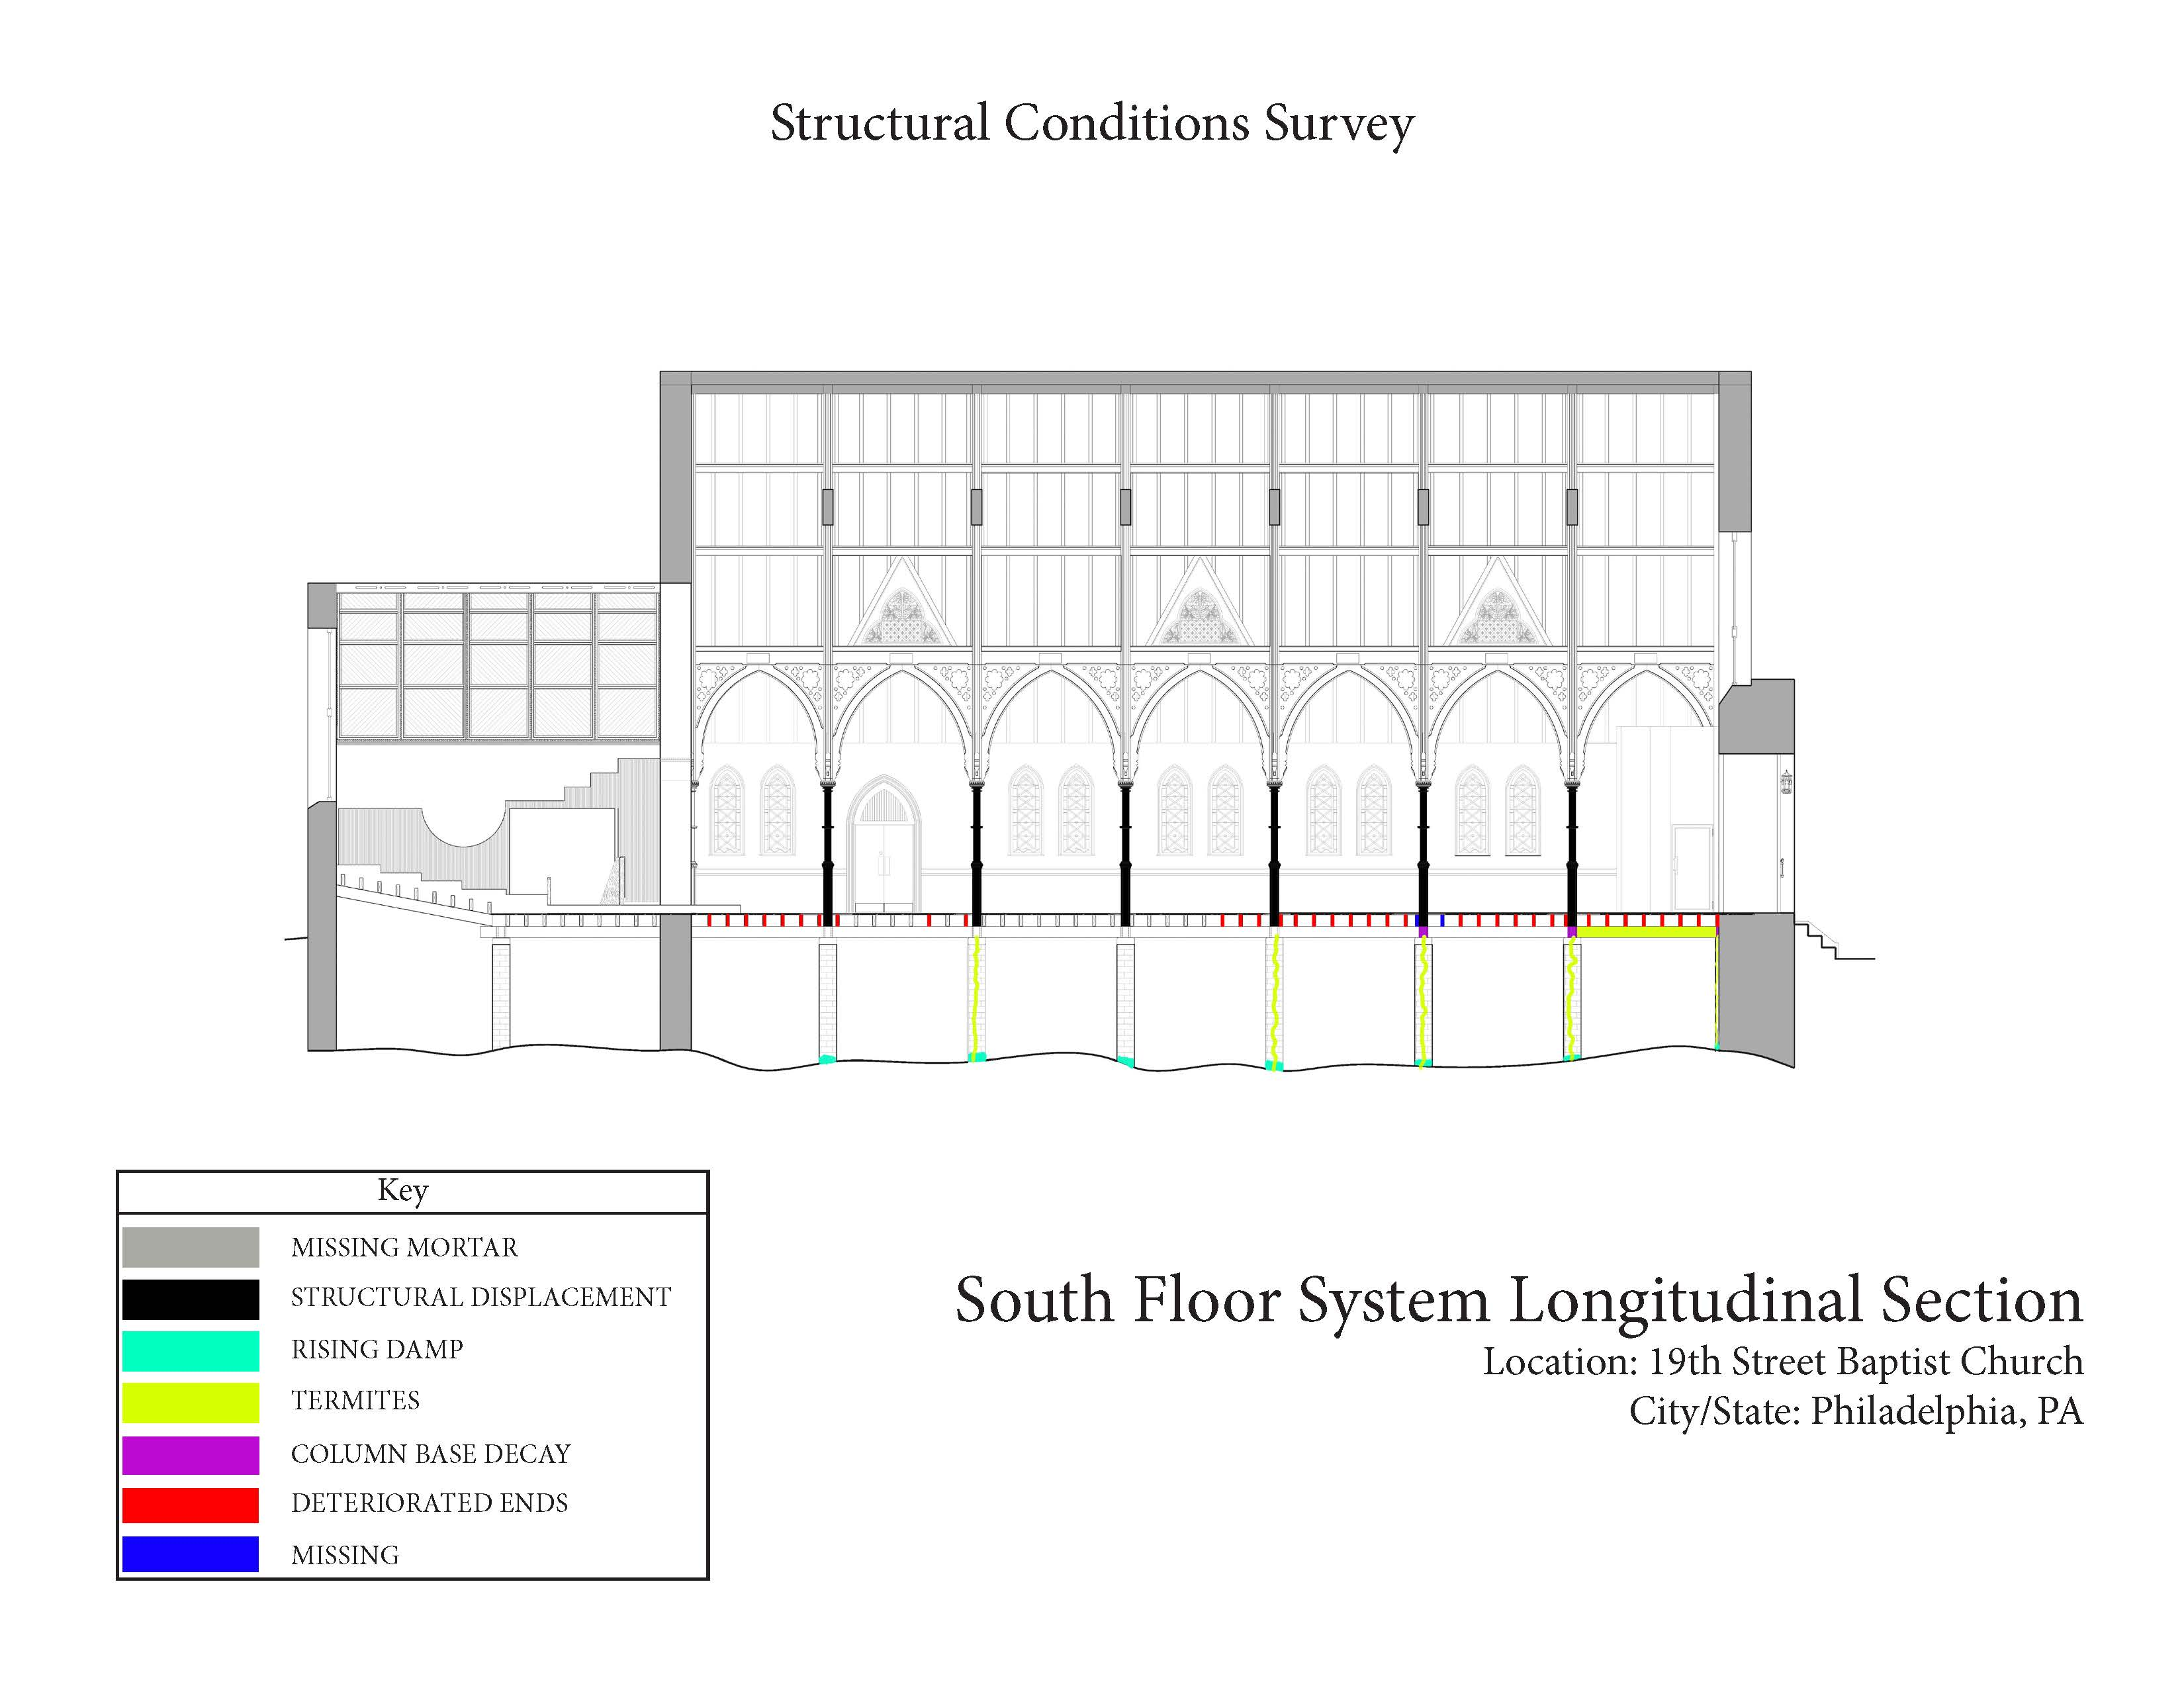 South Floor System, Longitudinal Section, 19th Street Baptist Church | PennDesign, Graduate Program in Historic Preservation